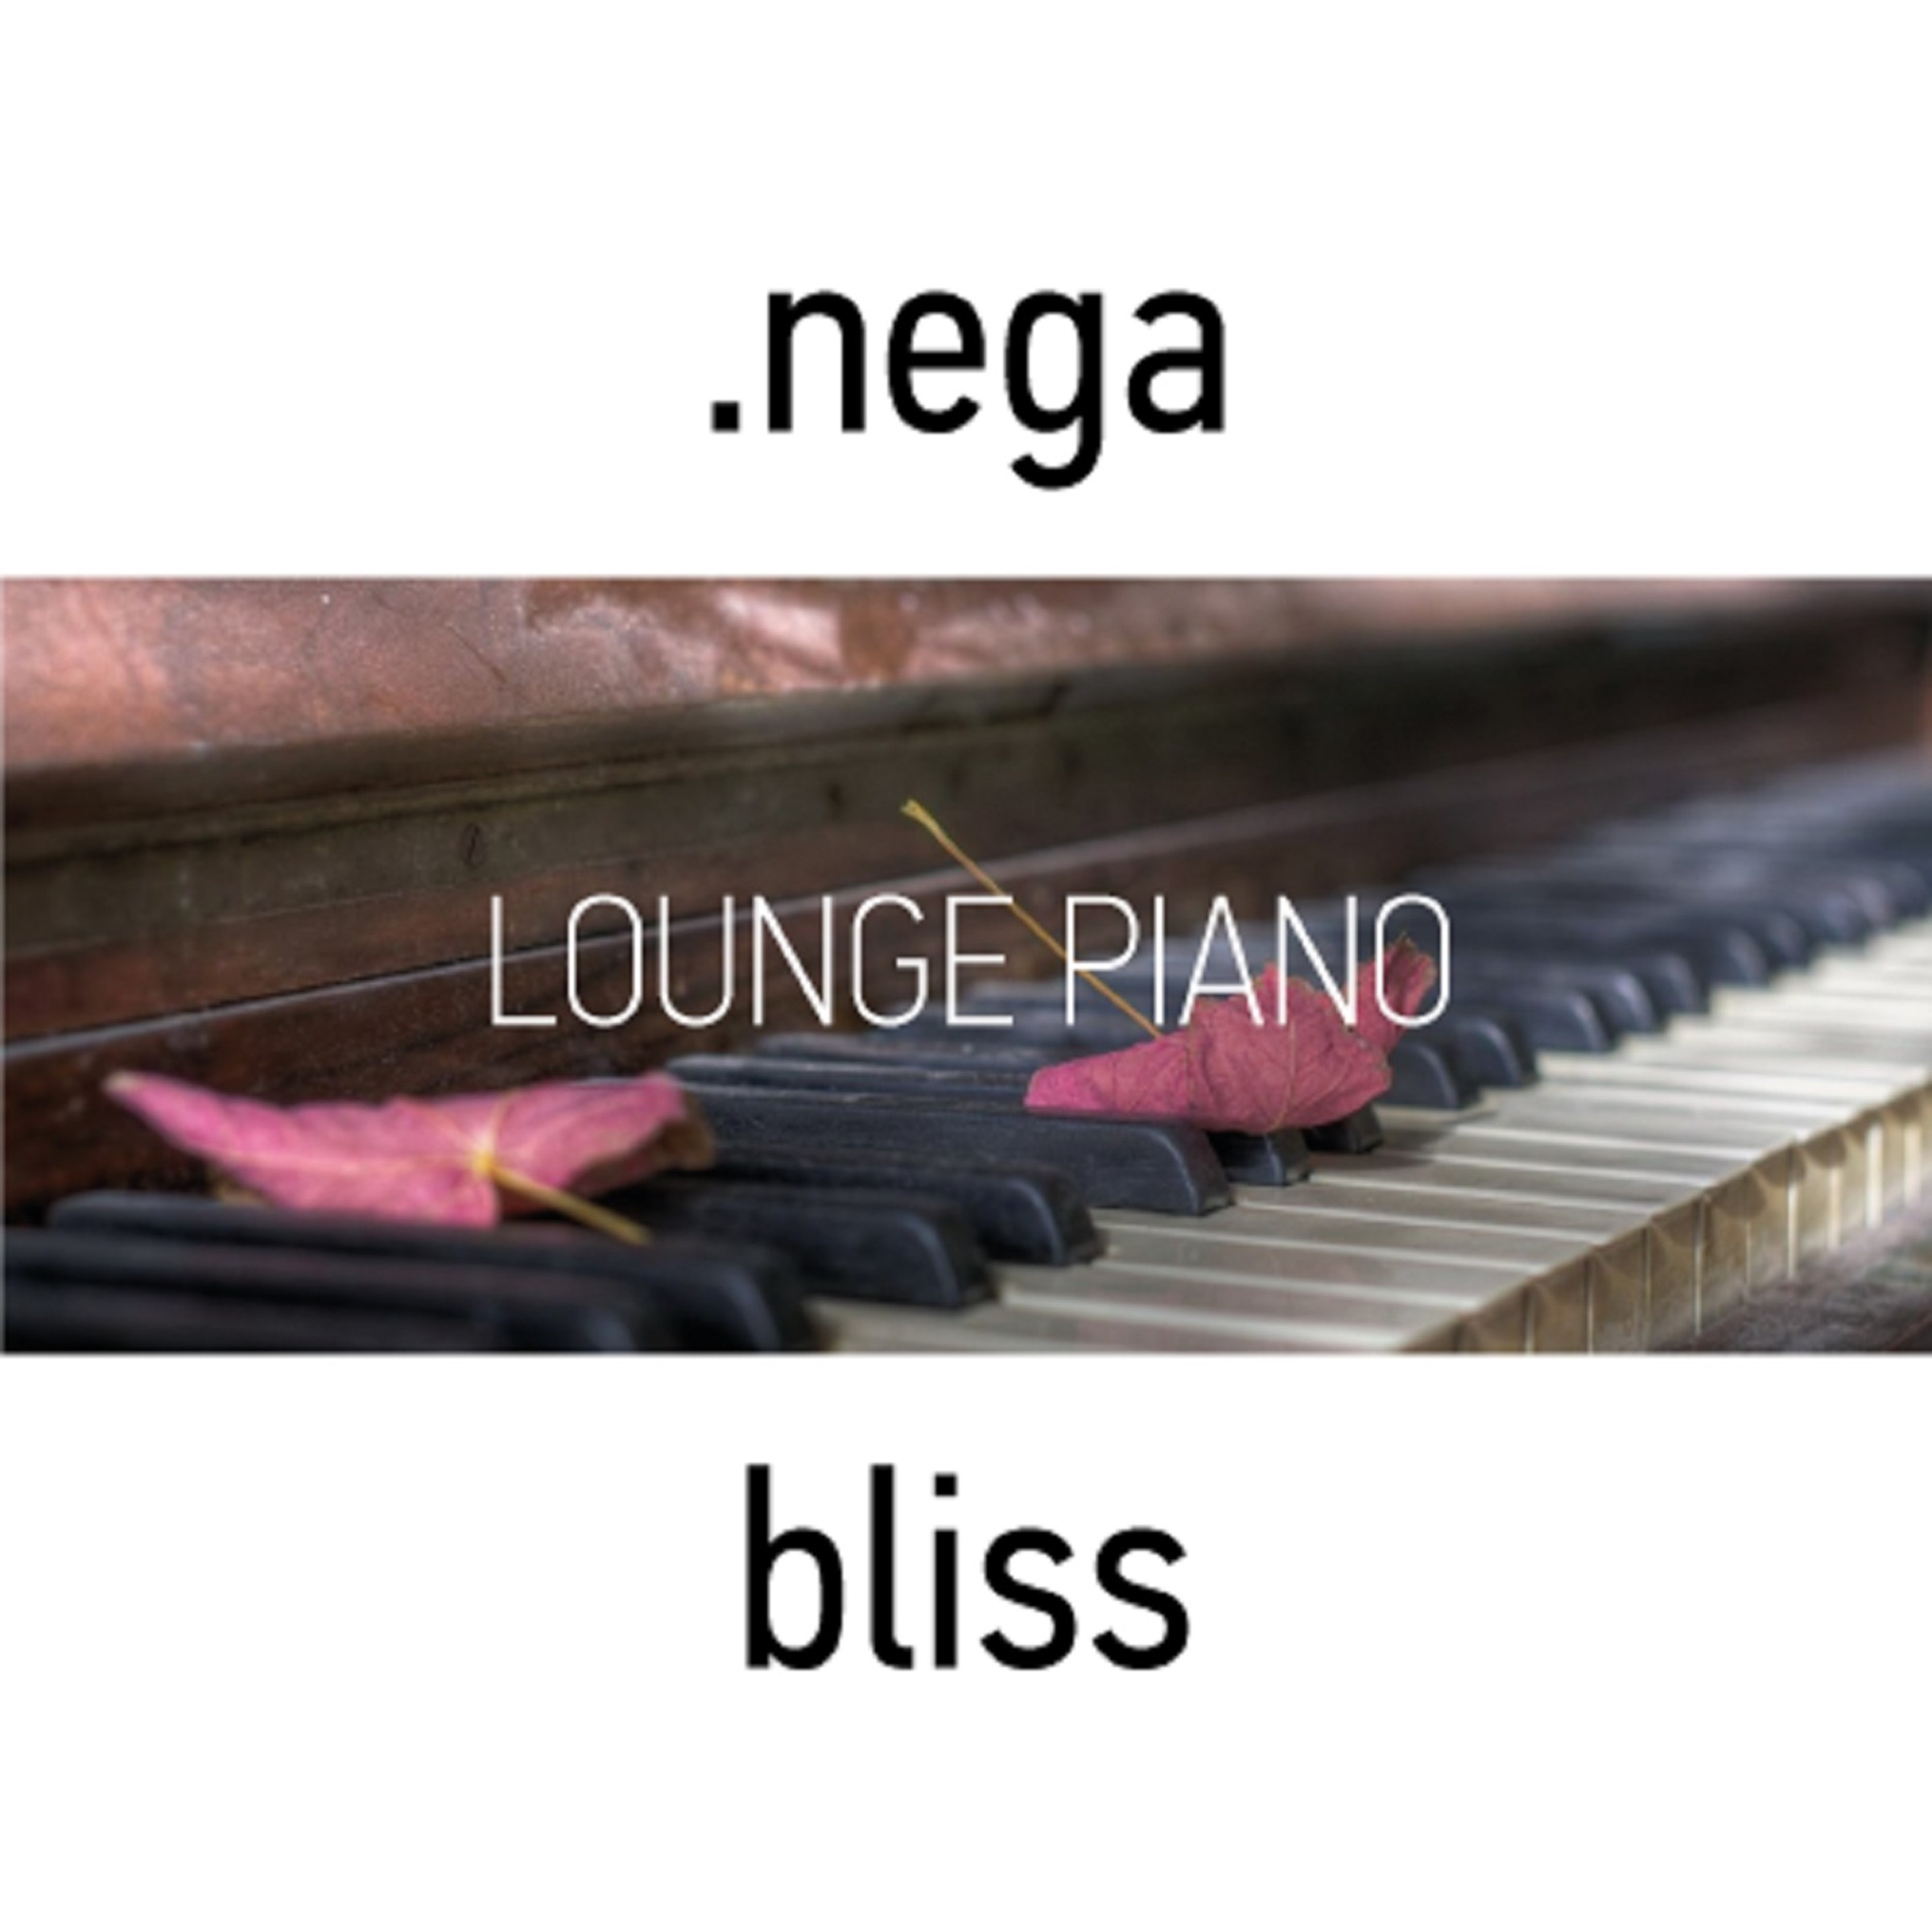 Bliss (Lounge Piano) - EP